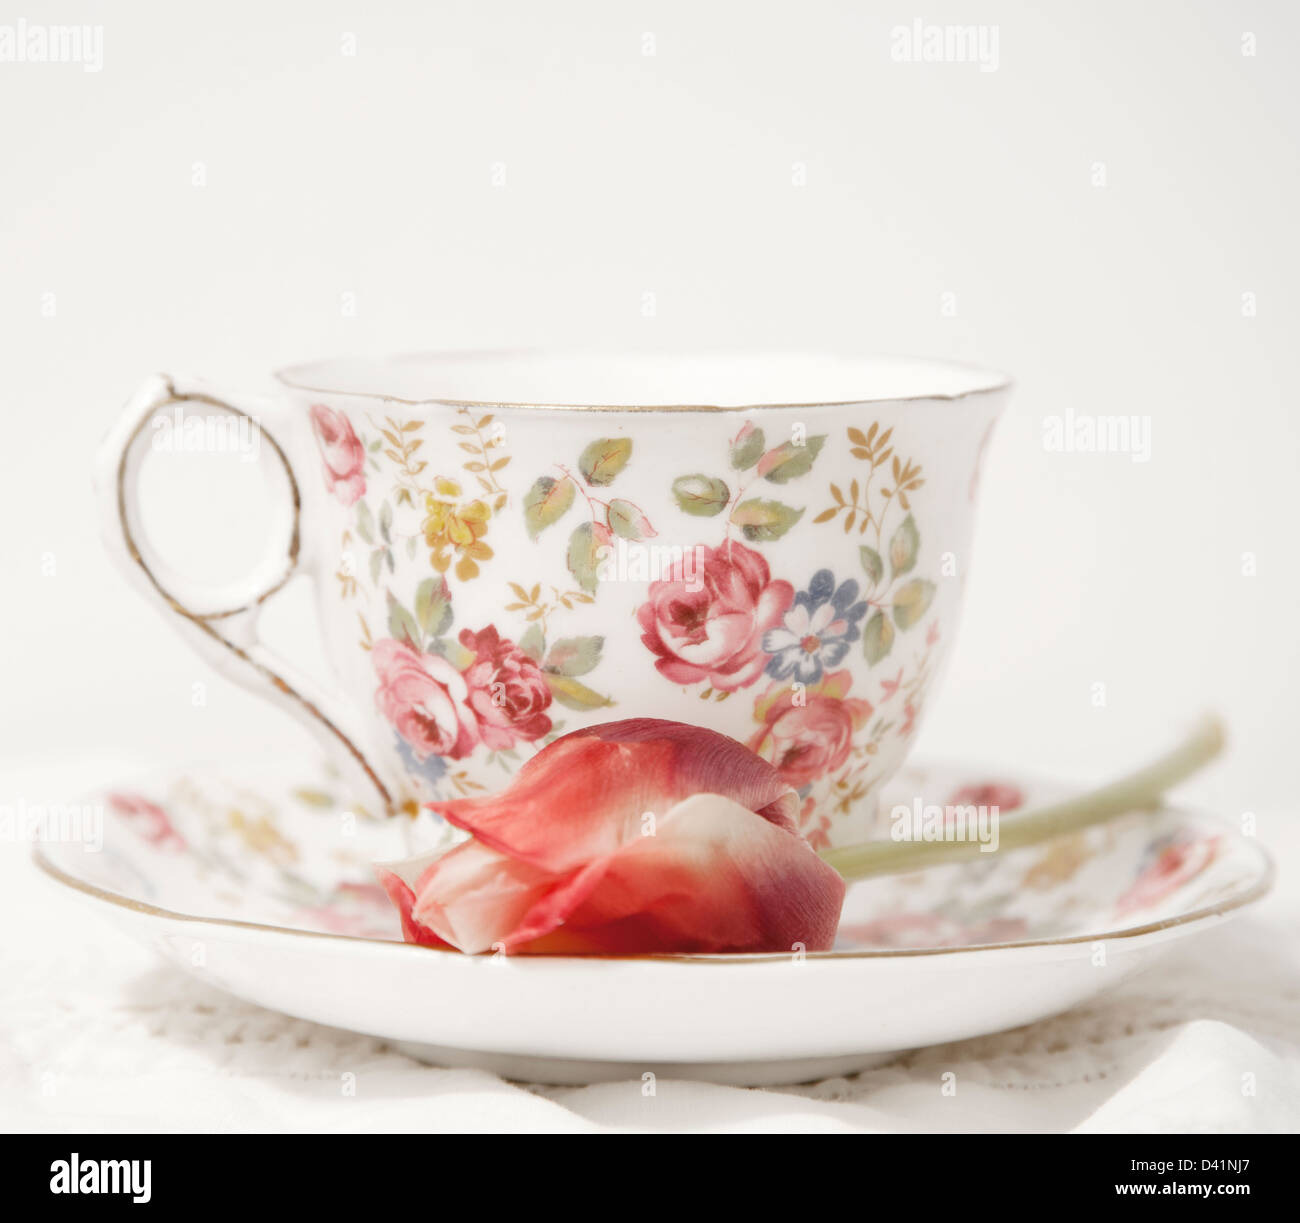 Flowered porcelain tea cup and saucer with tulip on saucer - Stock Image